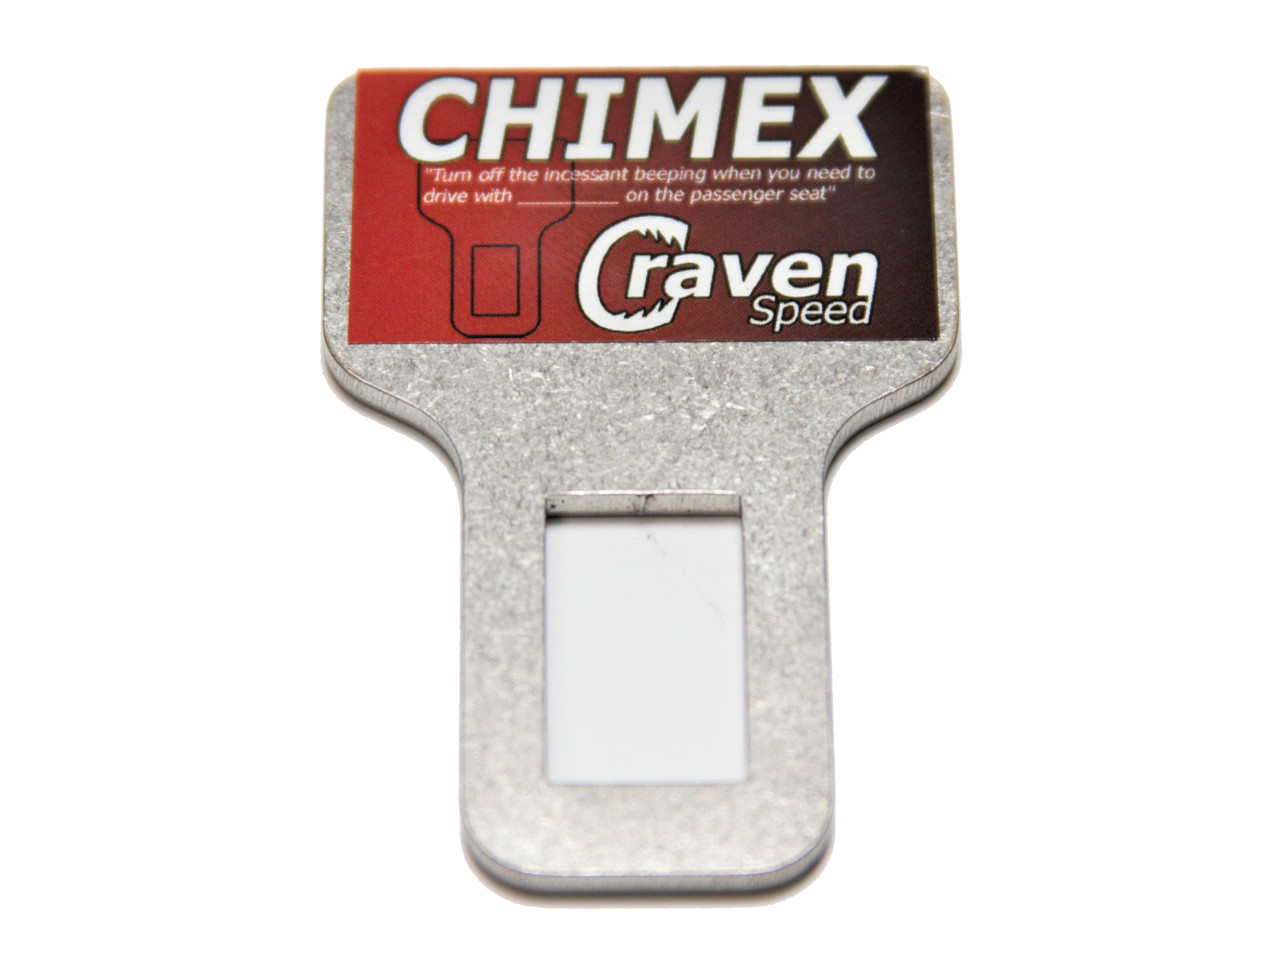 Thumbnail for Chimex for Ford